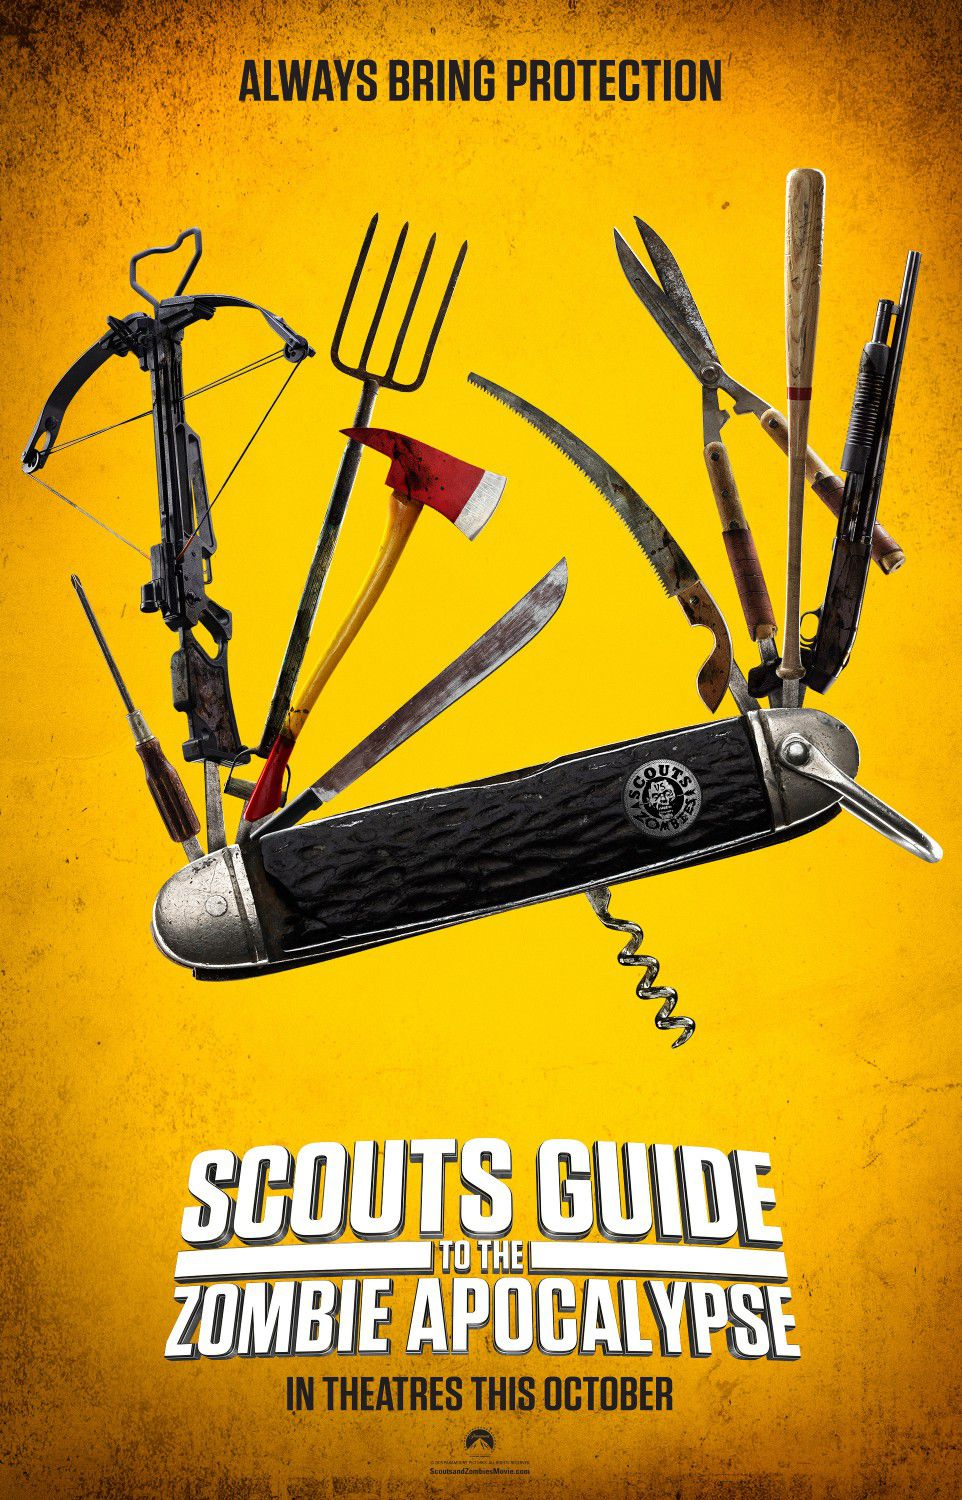 Always bring protection - Scout's Guide to the Zombie Apocalypse - Swiss Army knife